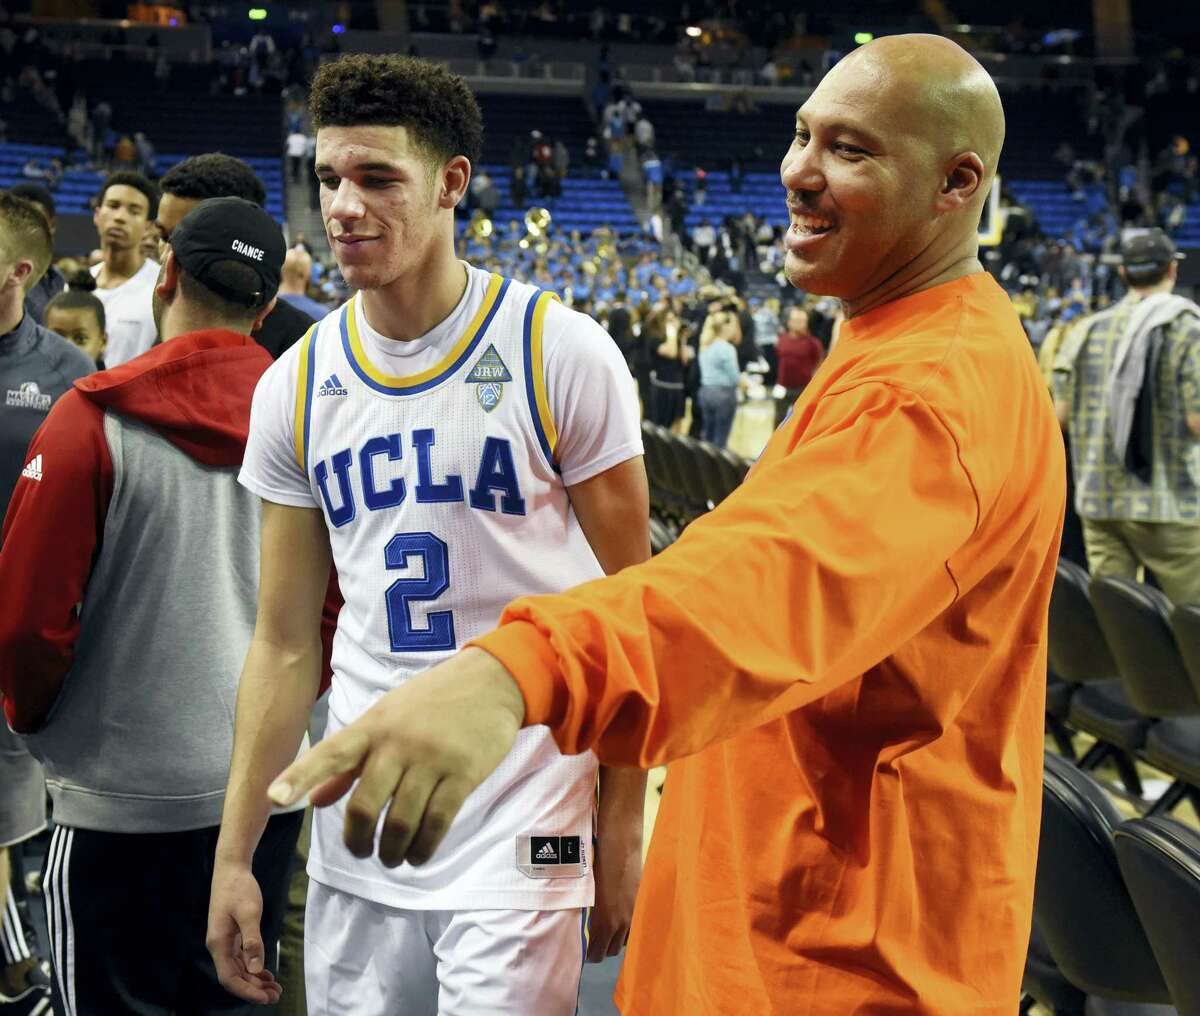 In this Nov. 20, 2016 photo, UCLA's Lonzo Ball (2) walks by his father LaVar Ball, right, to greet family members after UCLA defeated Long Beach State in an NCAA college basketball game in Los Angeles. By now the entire basketball world knows Lonzo Ball is a singular talent with a unique parent.